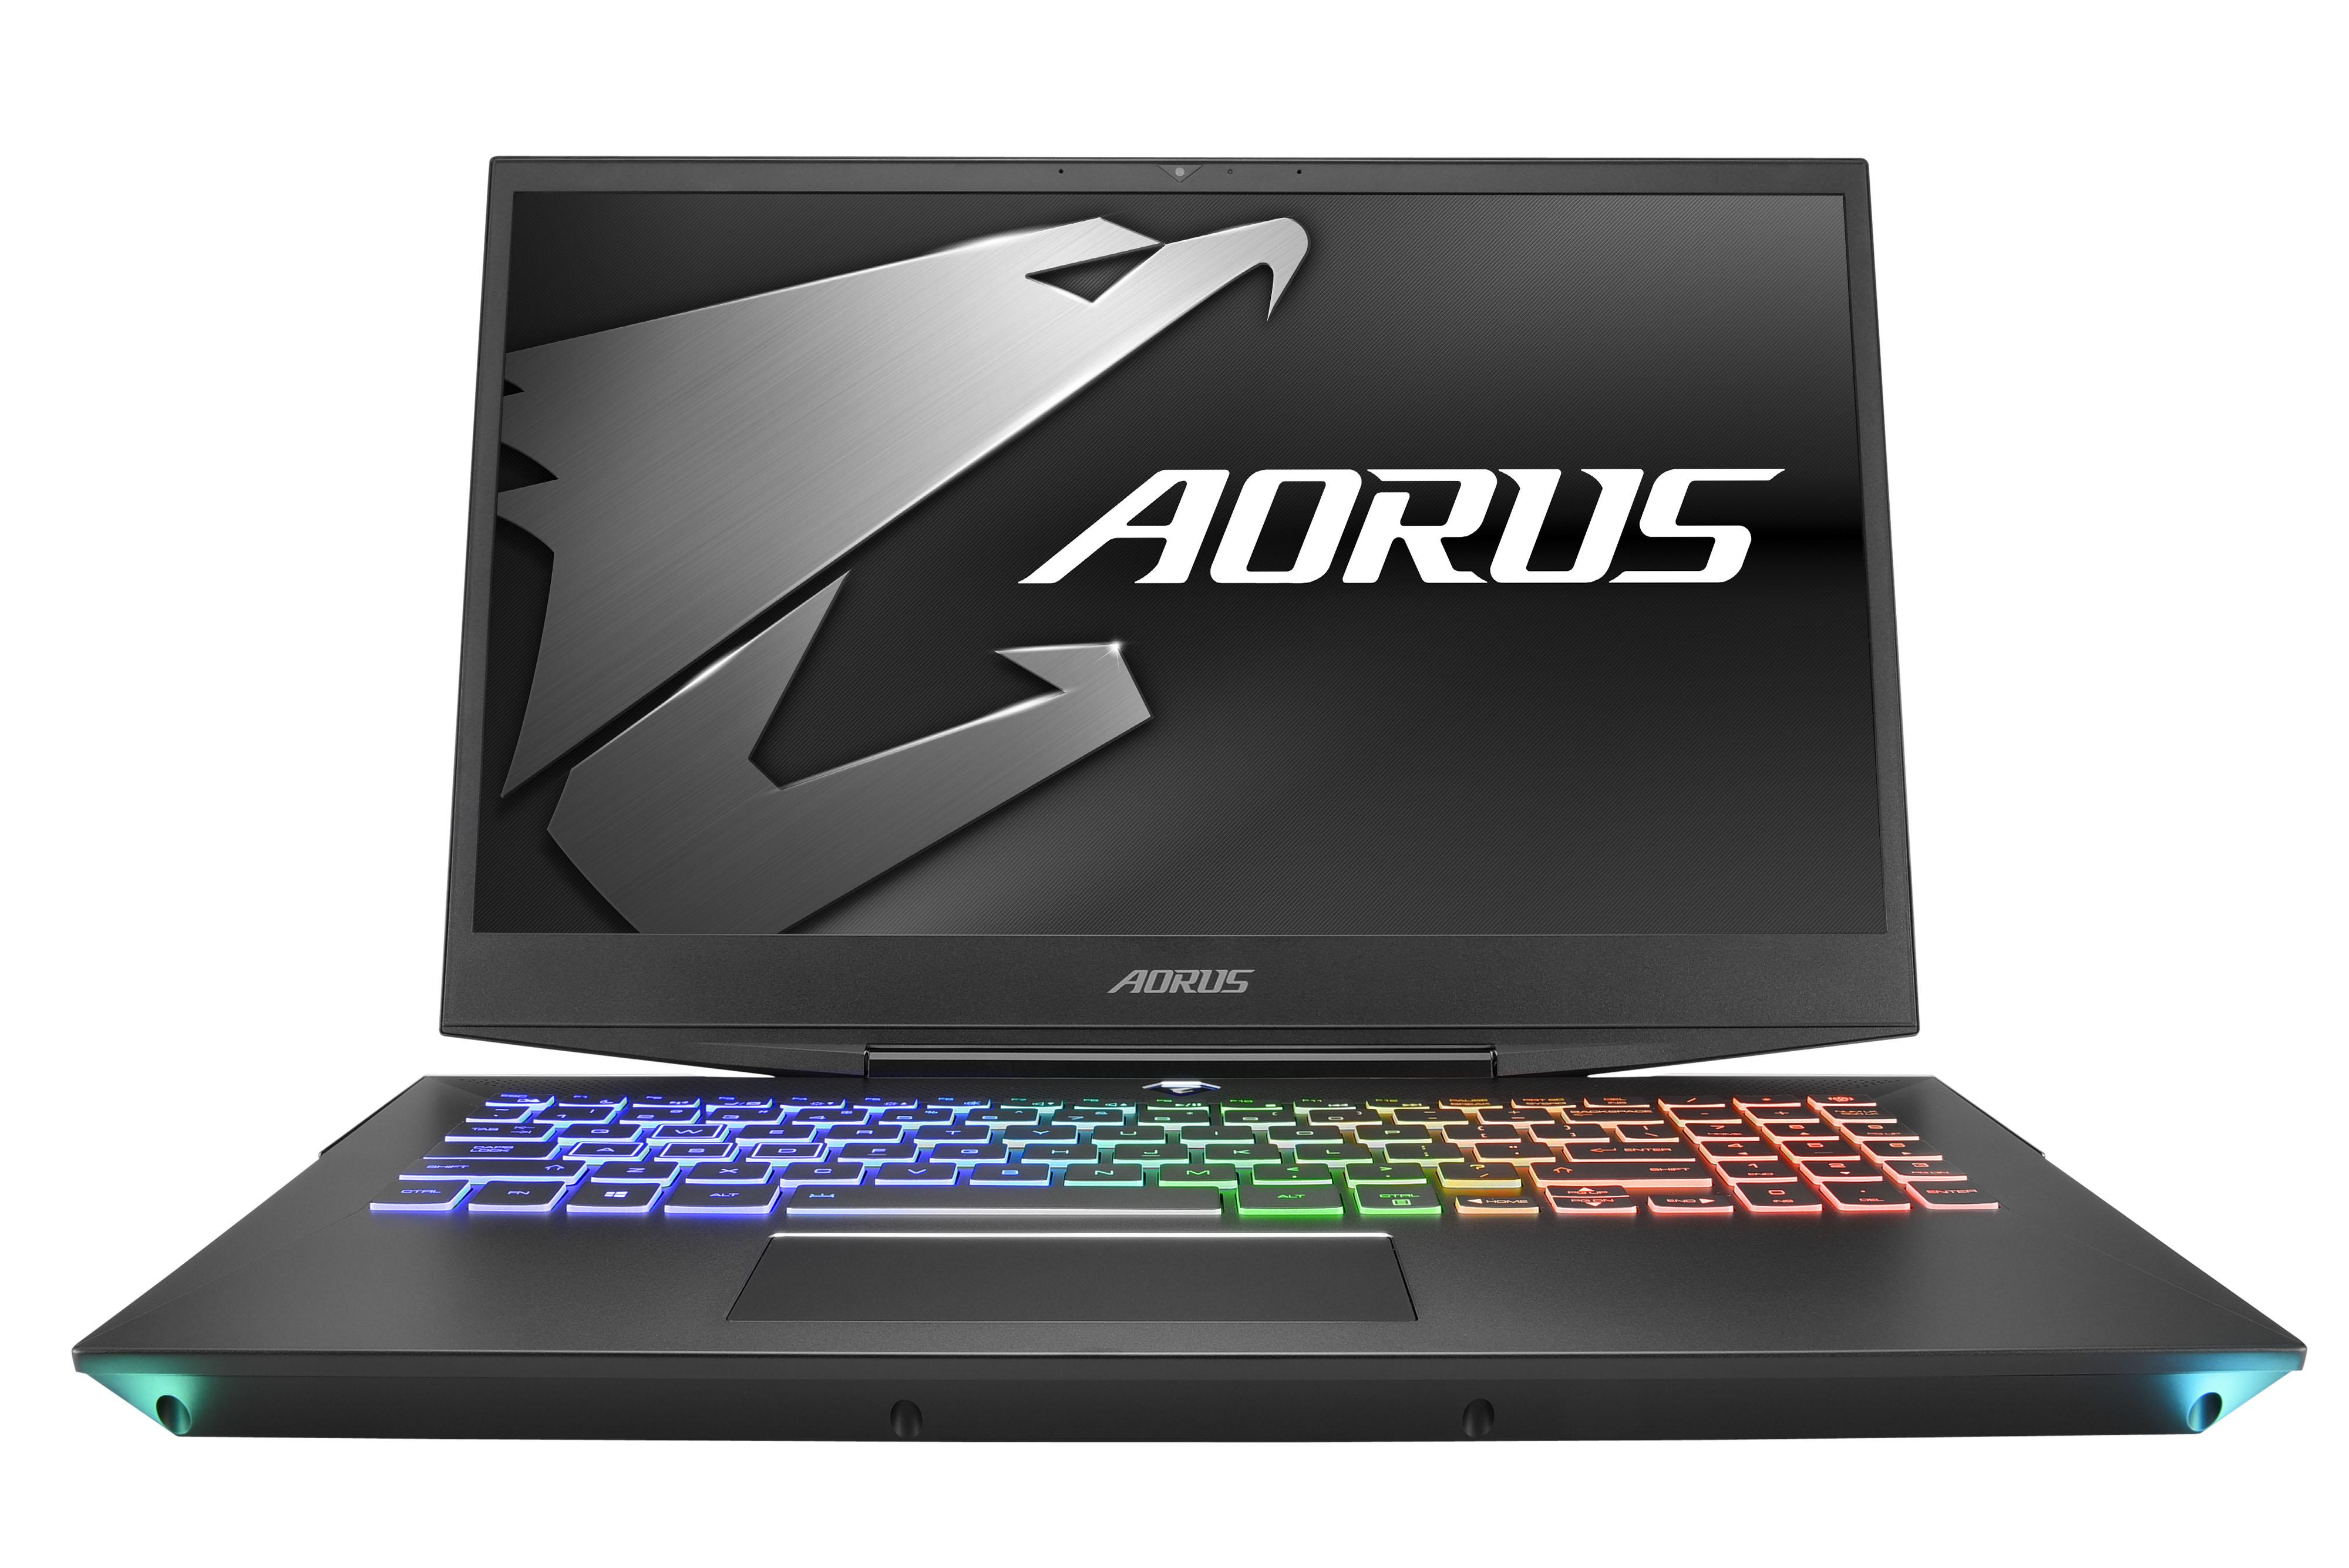 "Лаптоп GIGABYTE AORUS WA 15.6"", Intel® Core™ i7-9750H, 16GB, FHD 144Hz IPS, 512GB+2TB, RTX2060, Windows 10 Home"